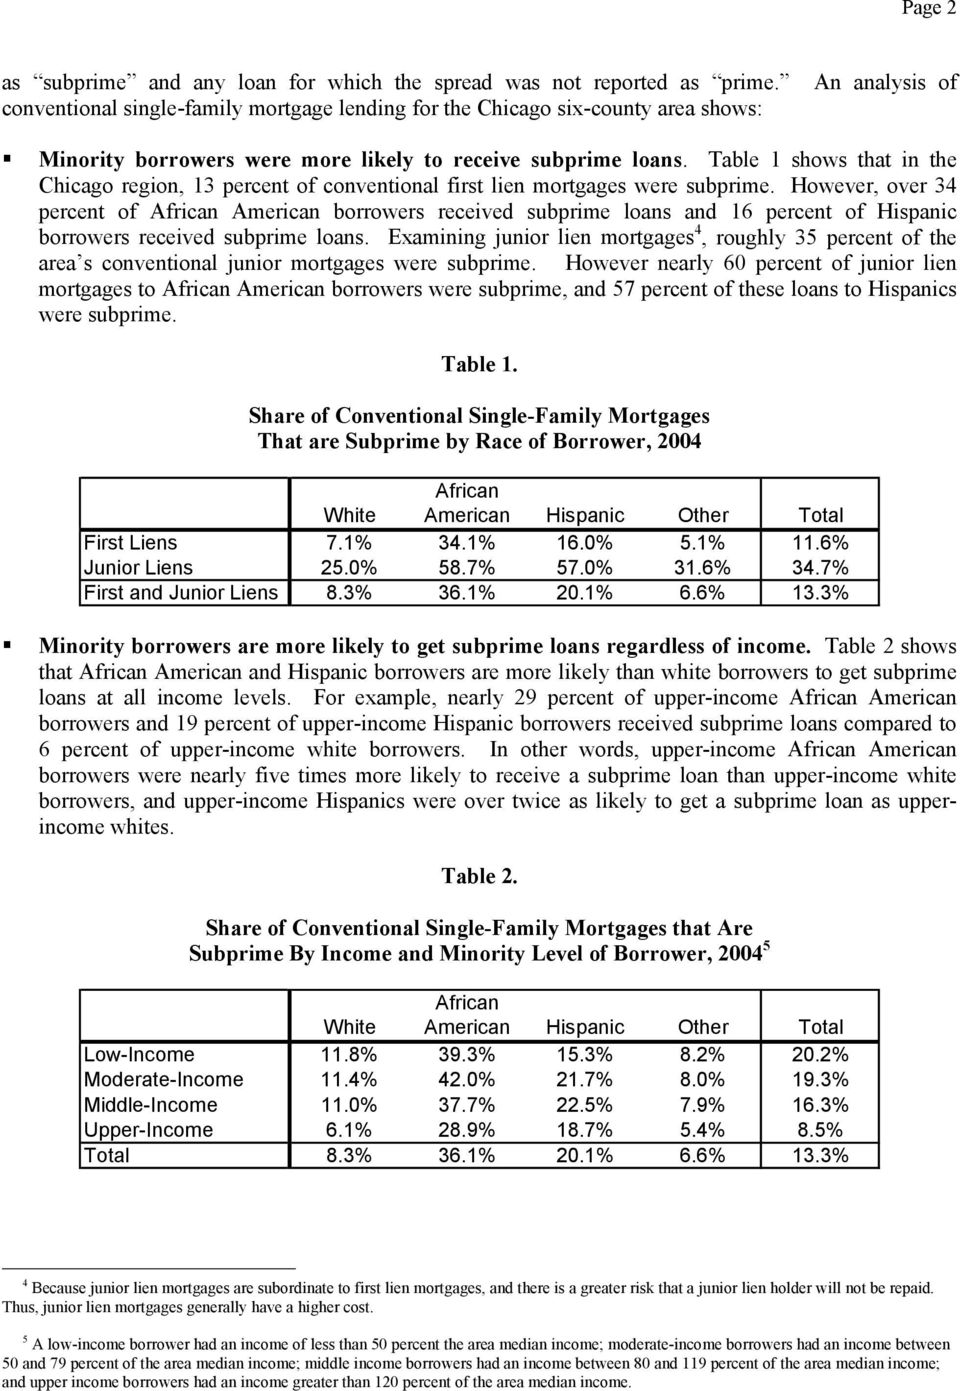 Table 1 shows that in the Chicago region, 13 percent of conventional first lien mortgages were subprime.